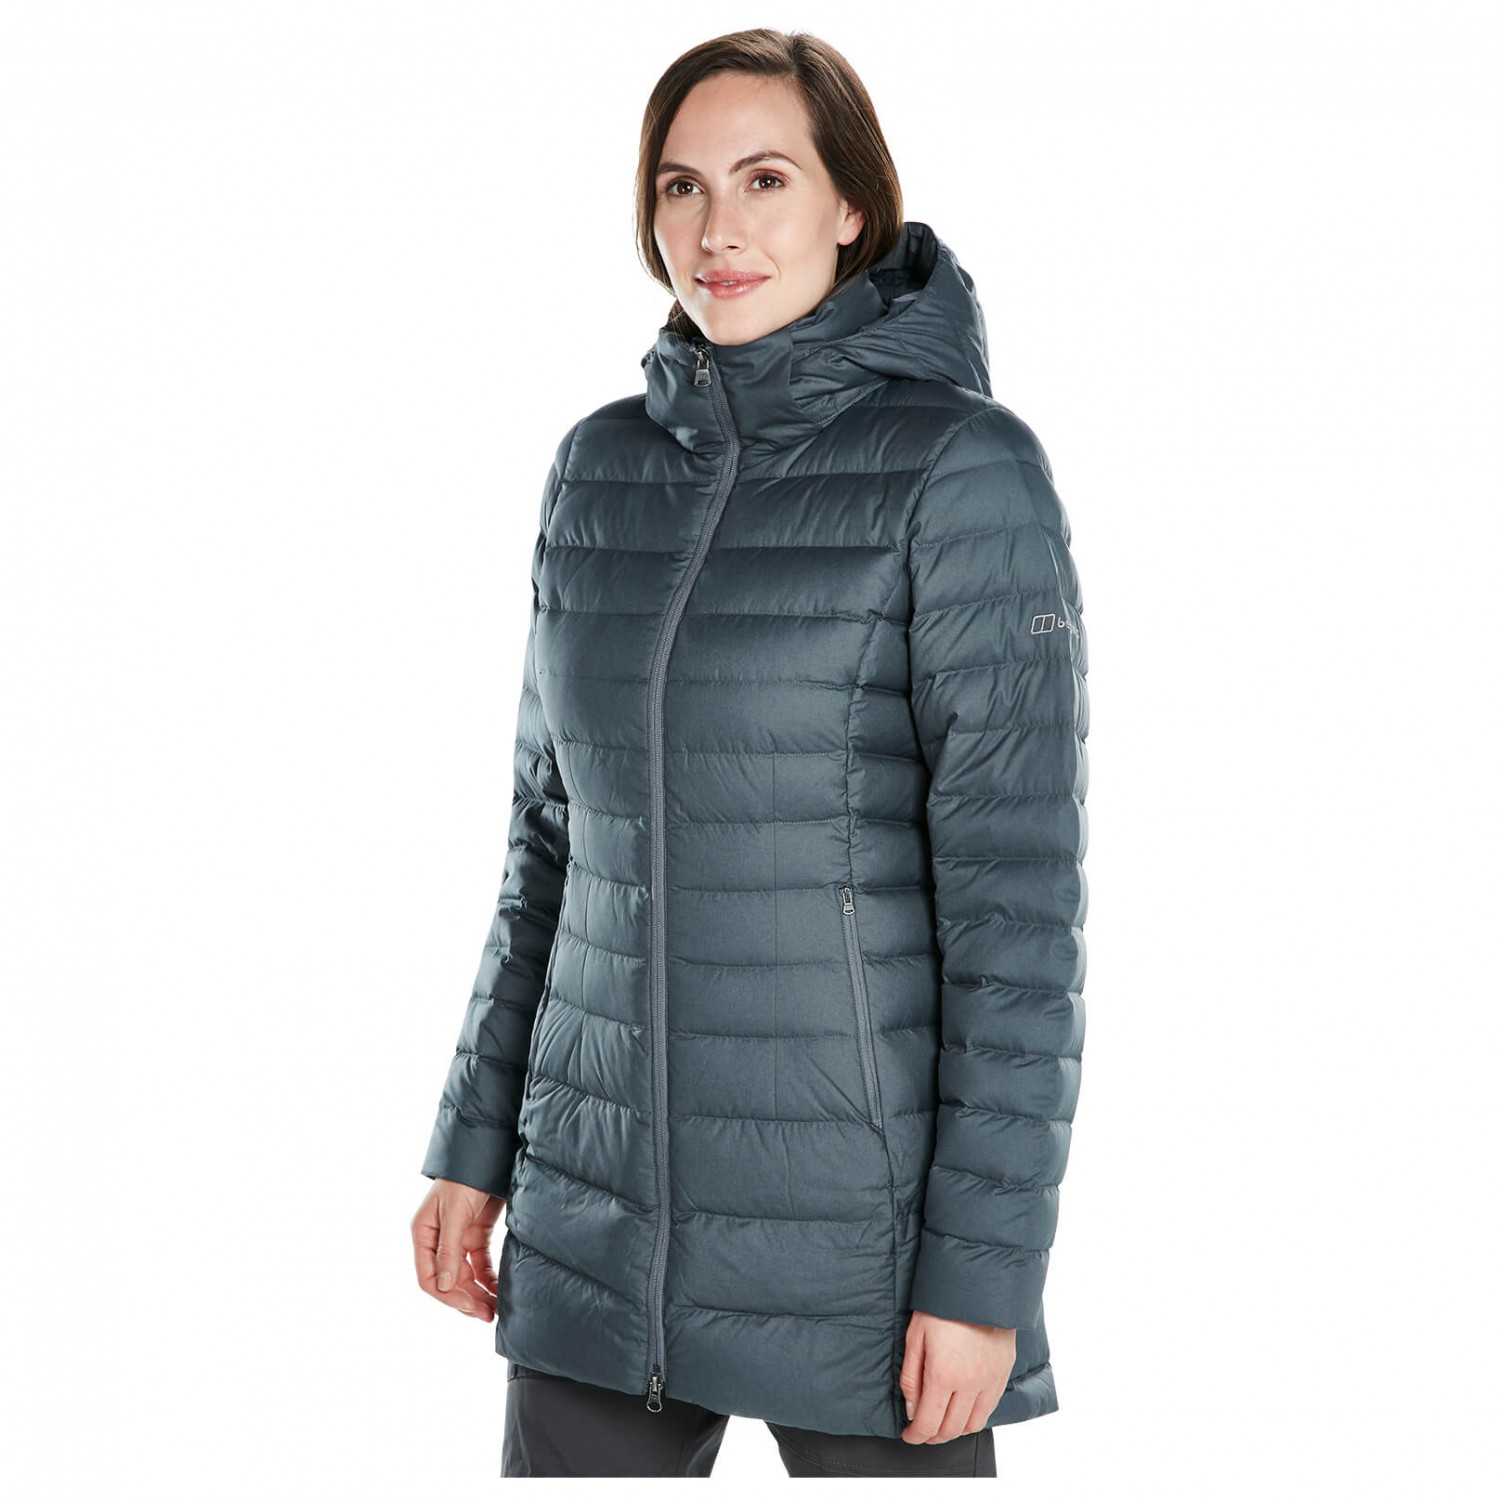 Berghaus womens coats